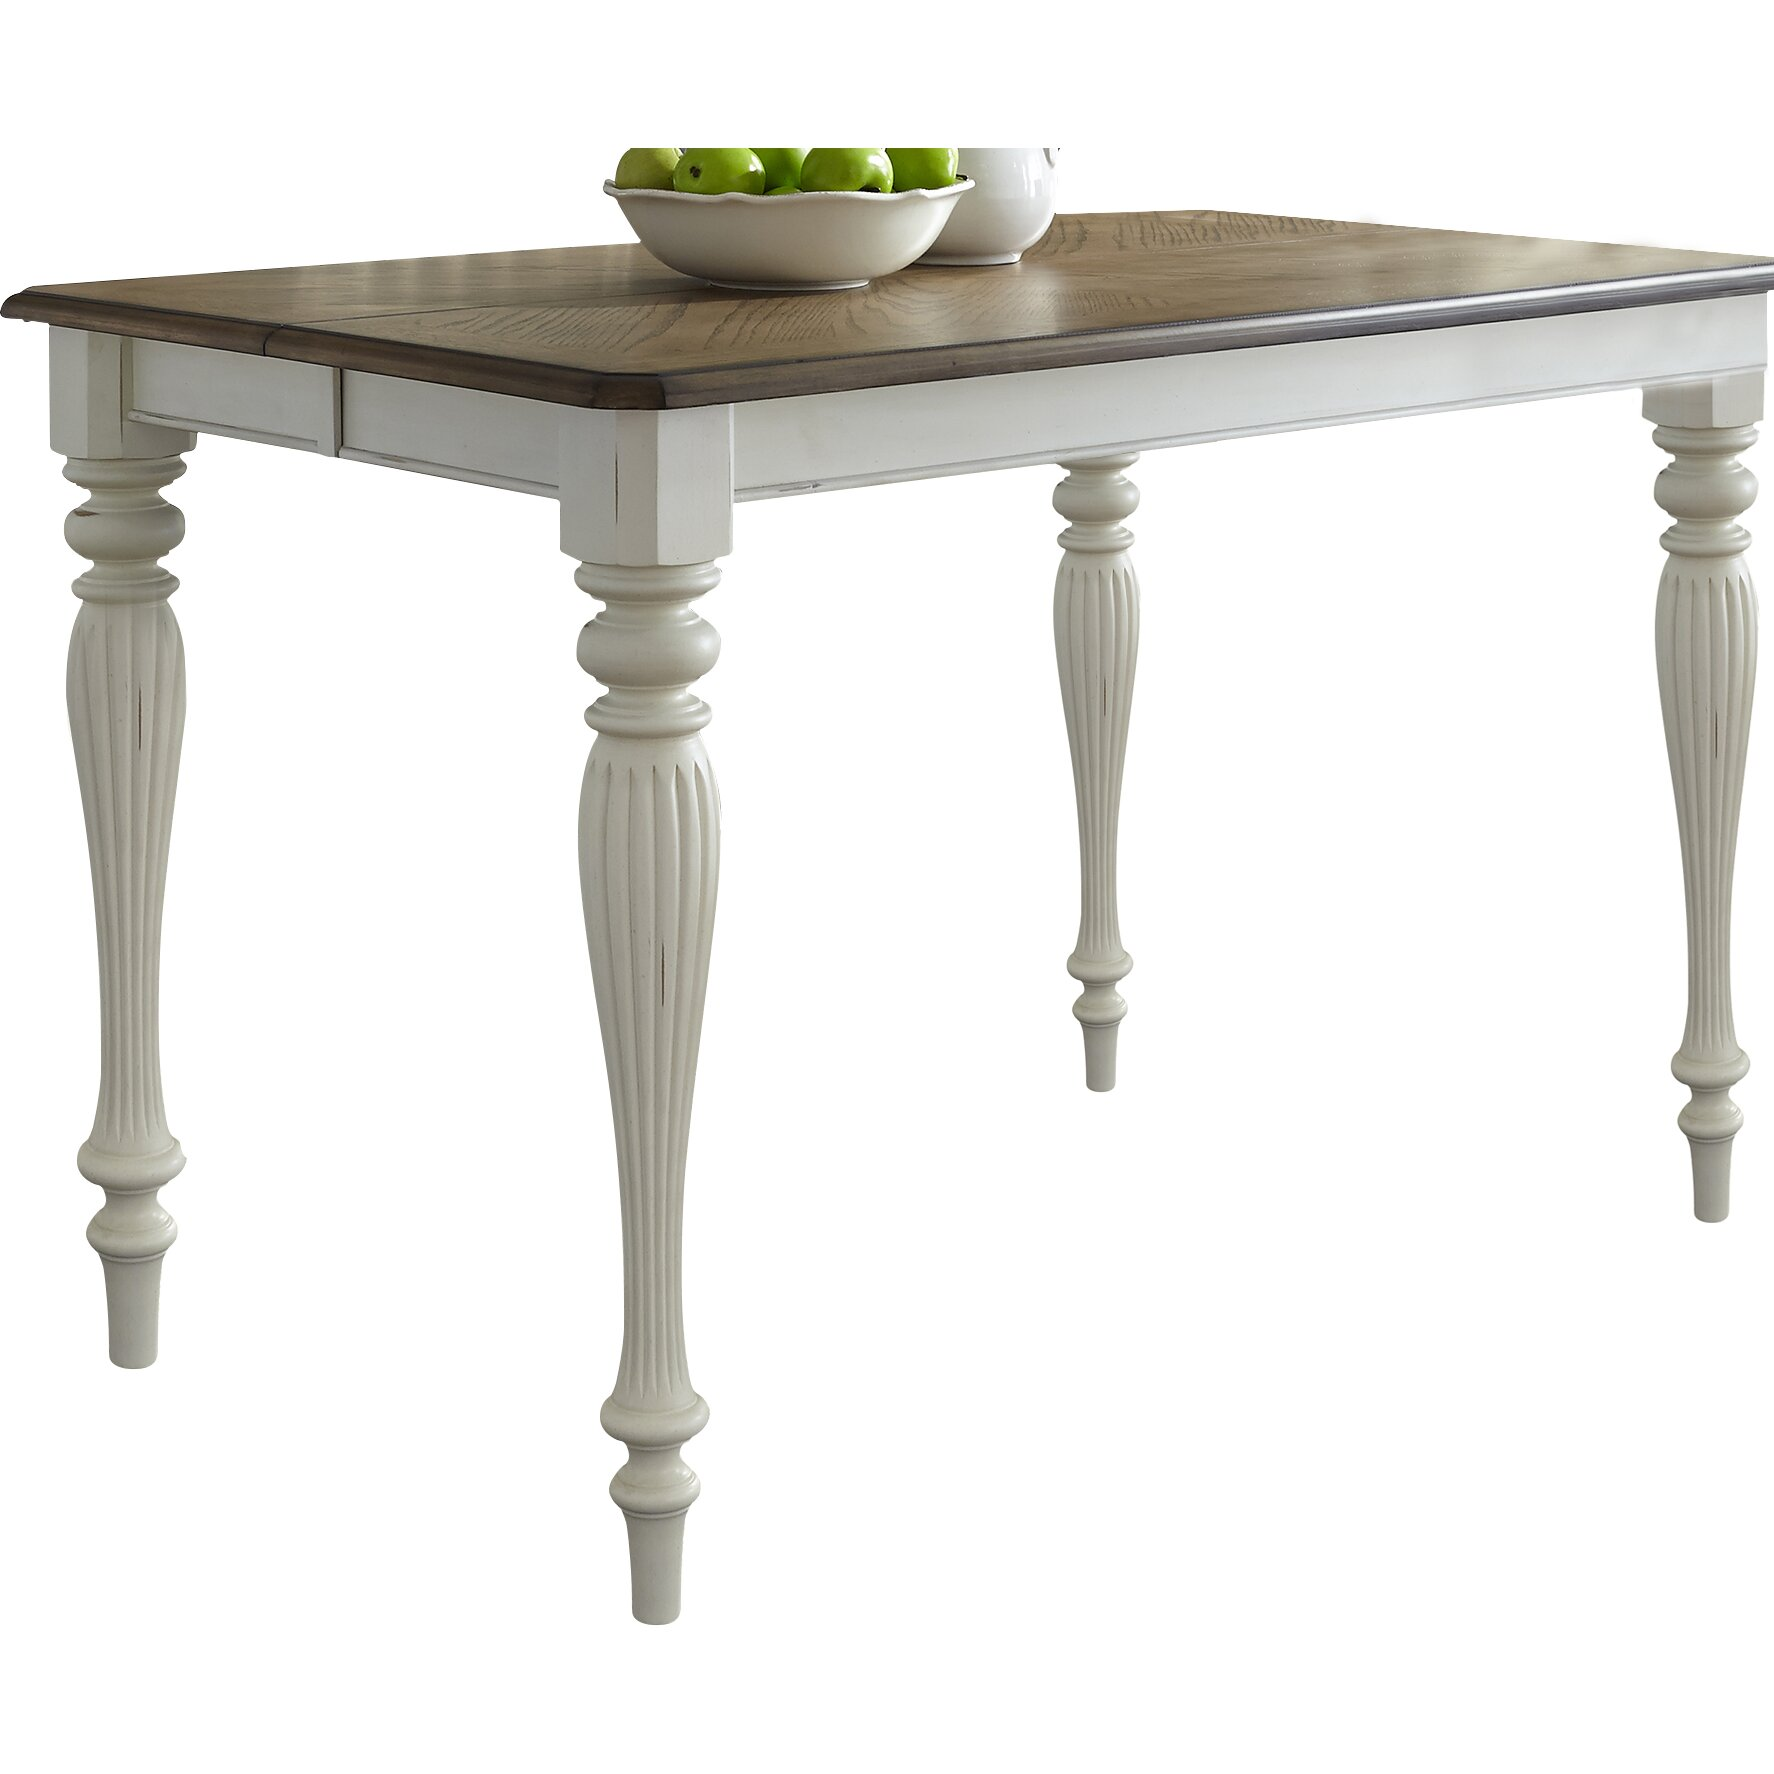 Lark manor cambrai gathering extendable dining table reviews - Enticing modern dining room tables enticing gathering space ...